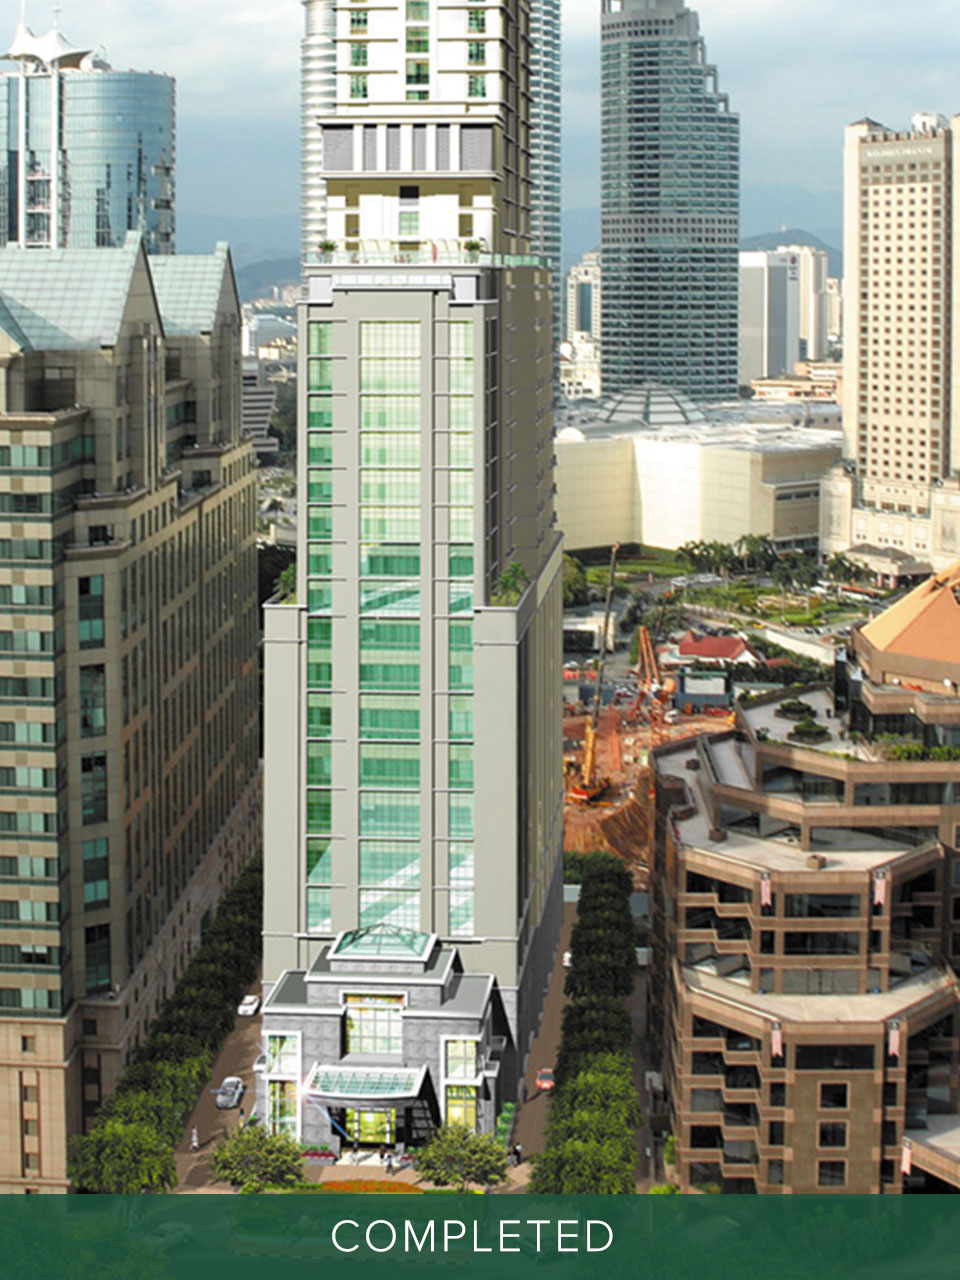 "FRASER PLACE<a href=""/track-records#fraserplace"">KUALA LUMPUR</a>"